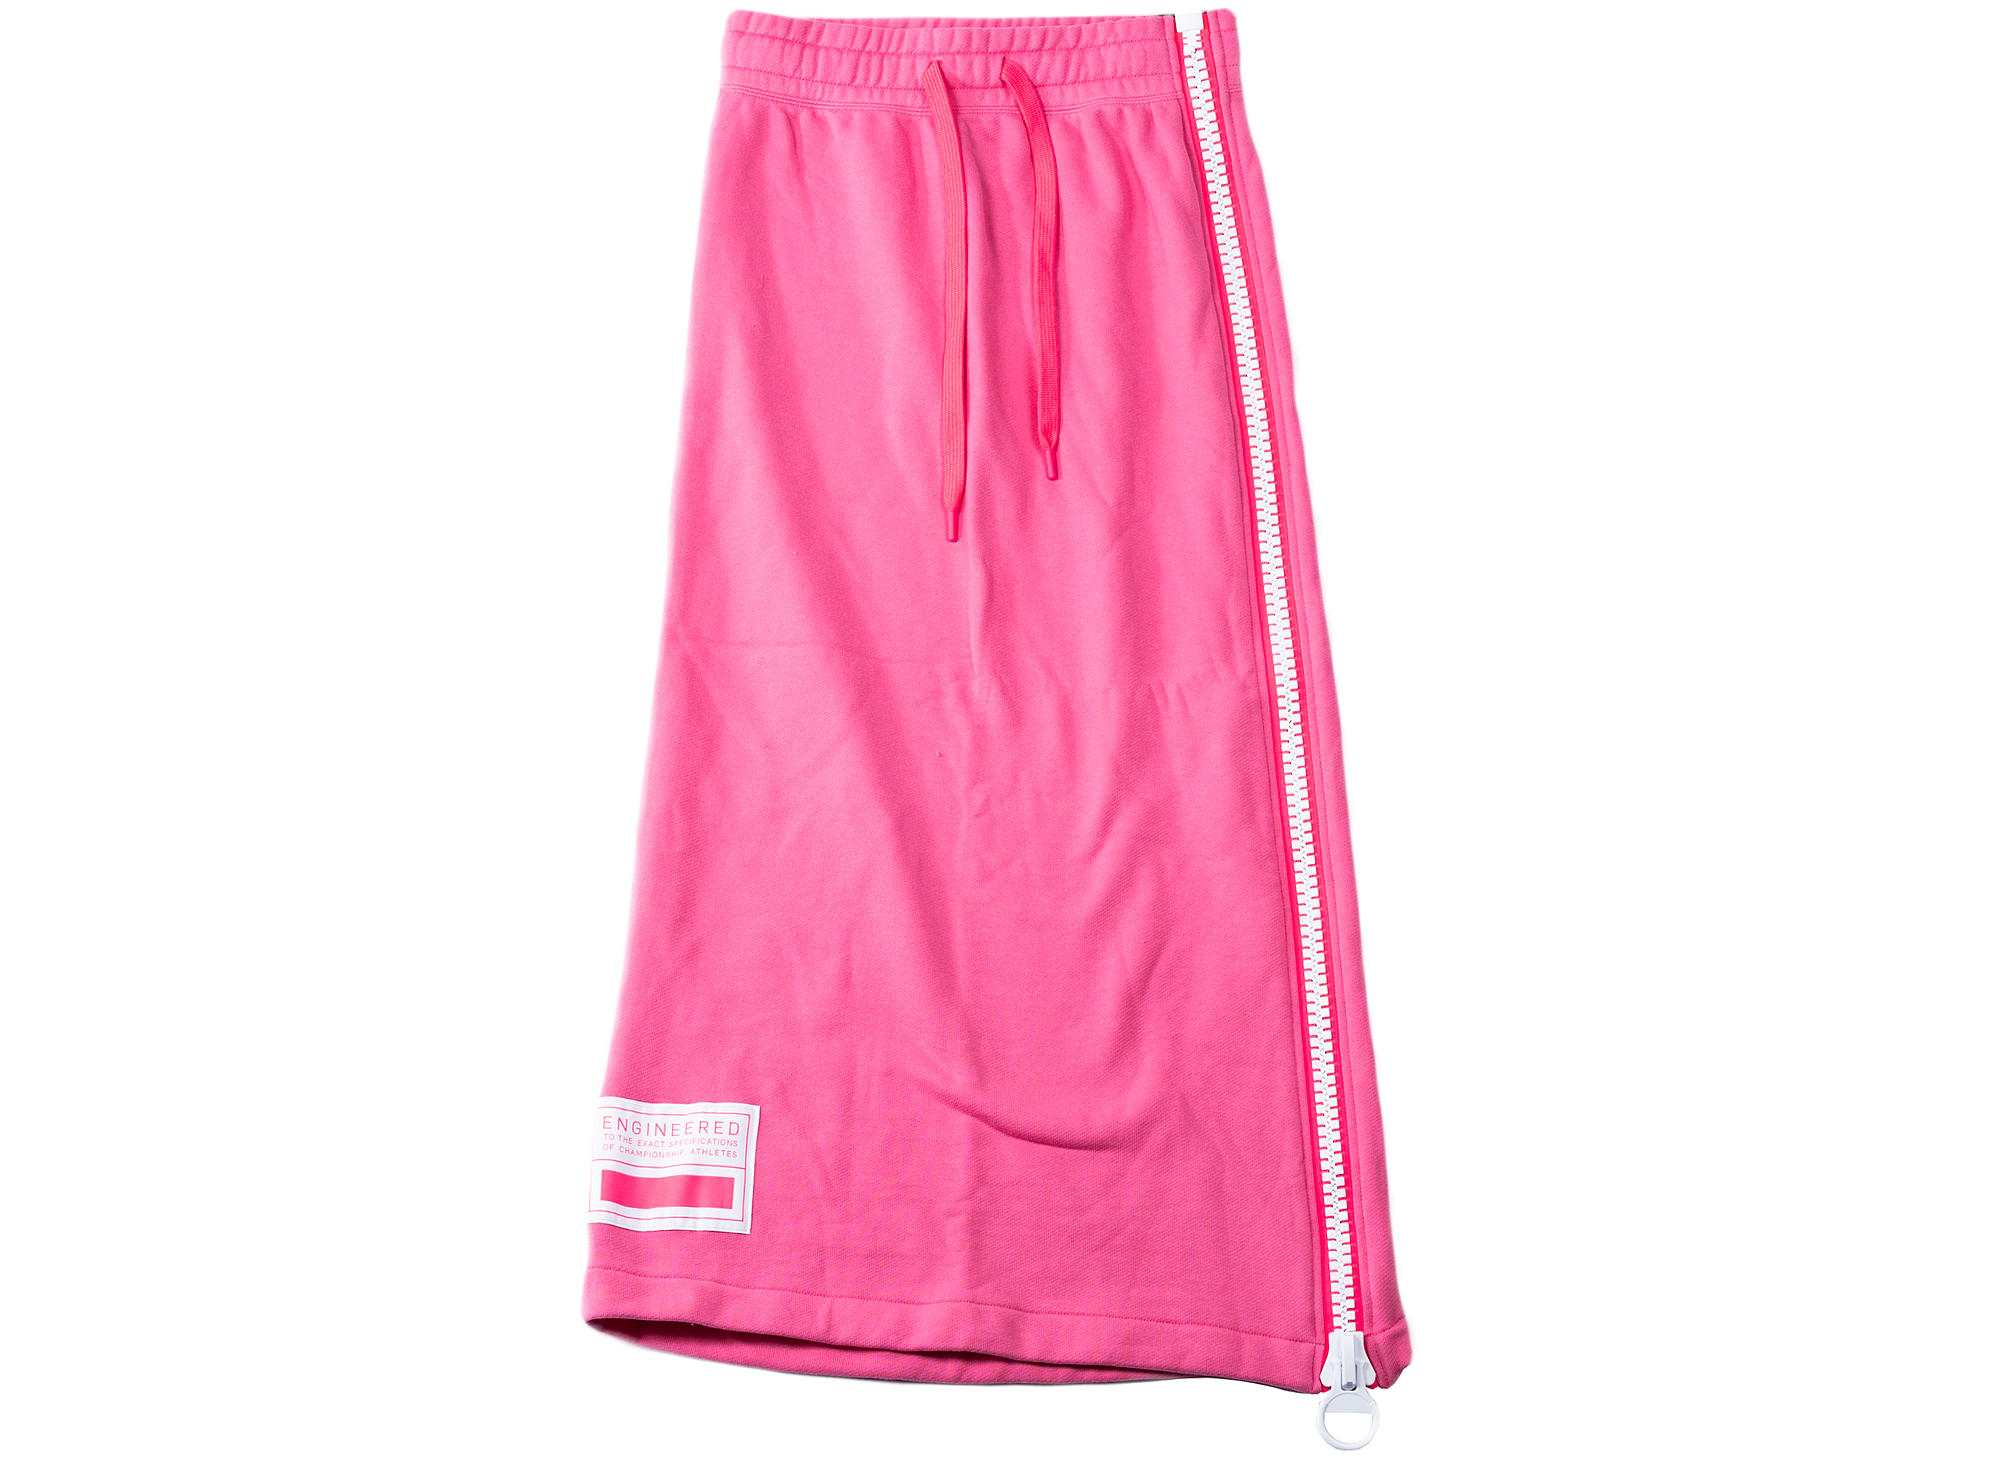 Women's Nike Sportswear NSW Women's Fleece Skirt